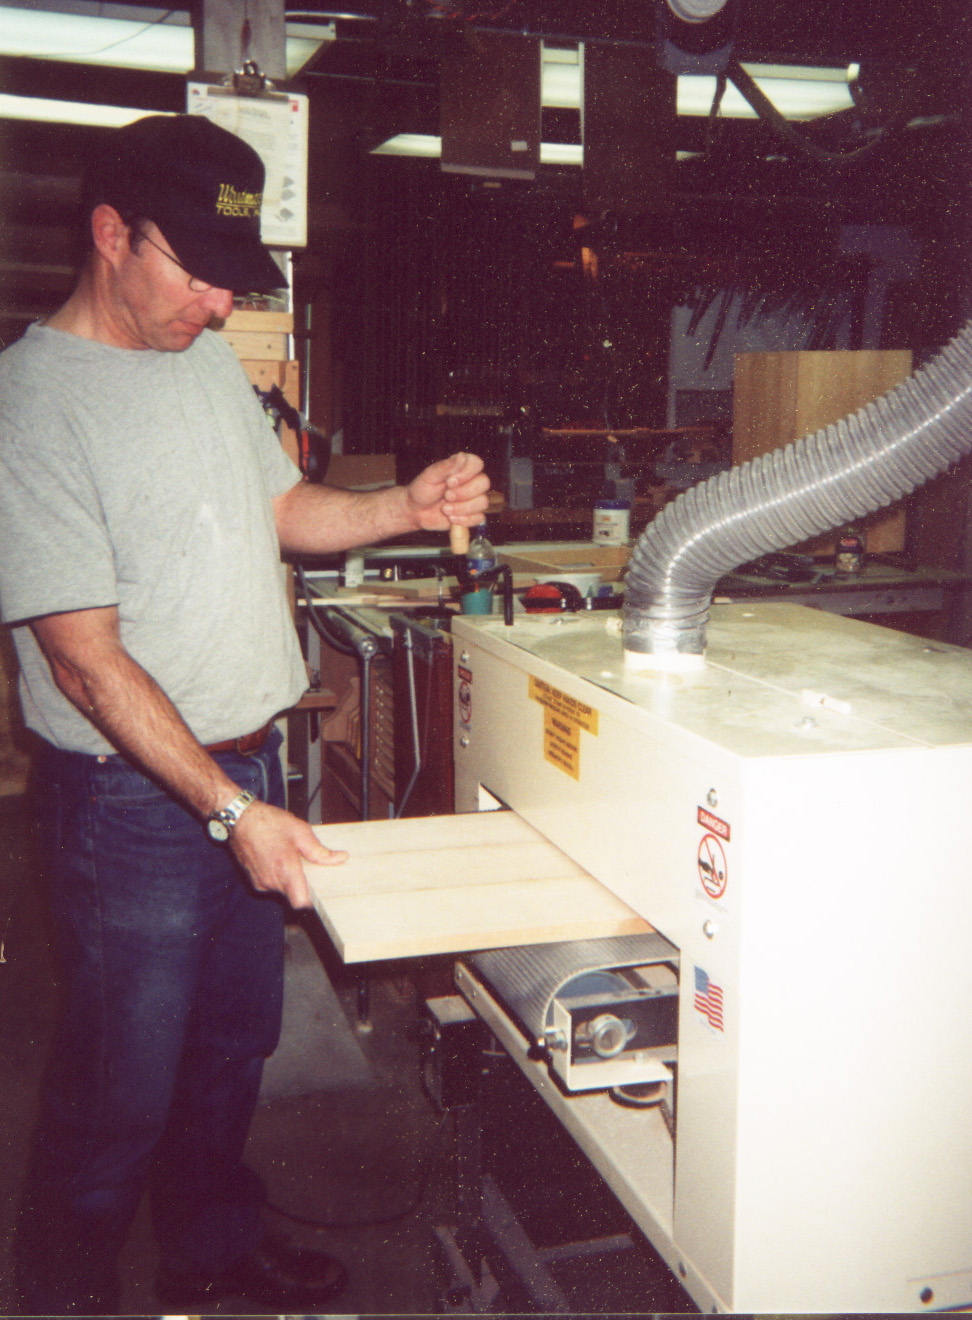 Bruce Bell credits his Woodmaster Drum Sander with boosting his production speed from 1 planter box a day to 10 or 12. At $250 apiece and up, an increase like that puts some serious money in the bank.